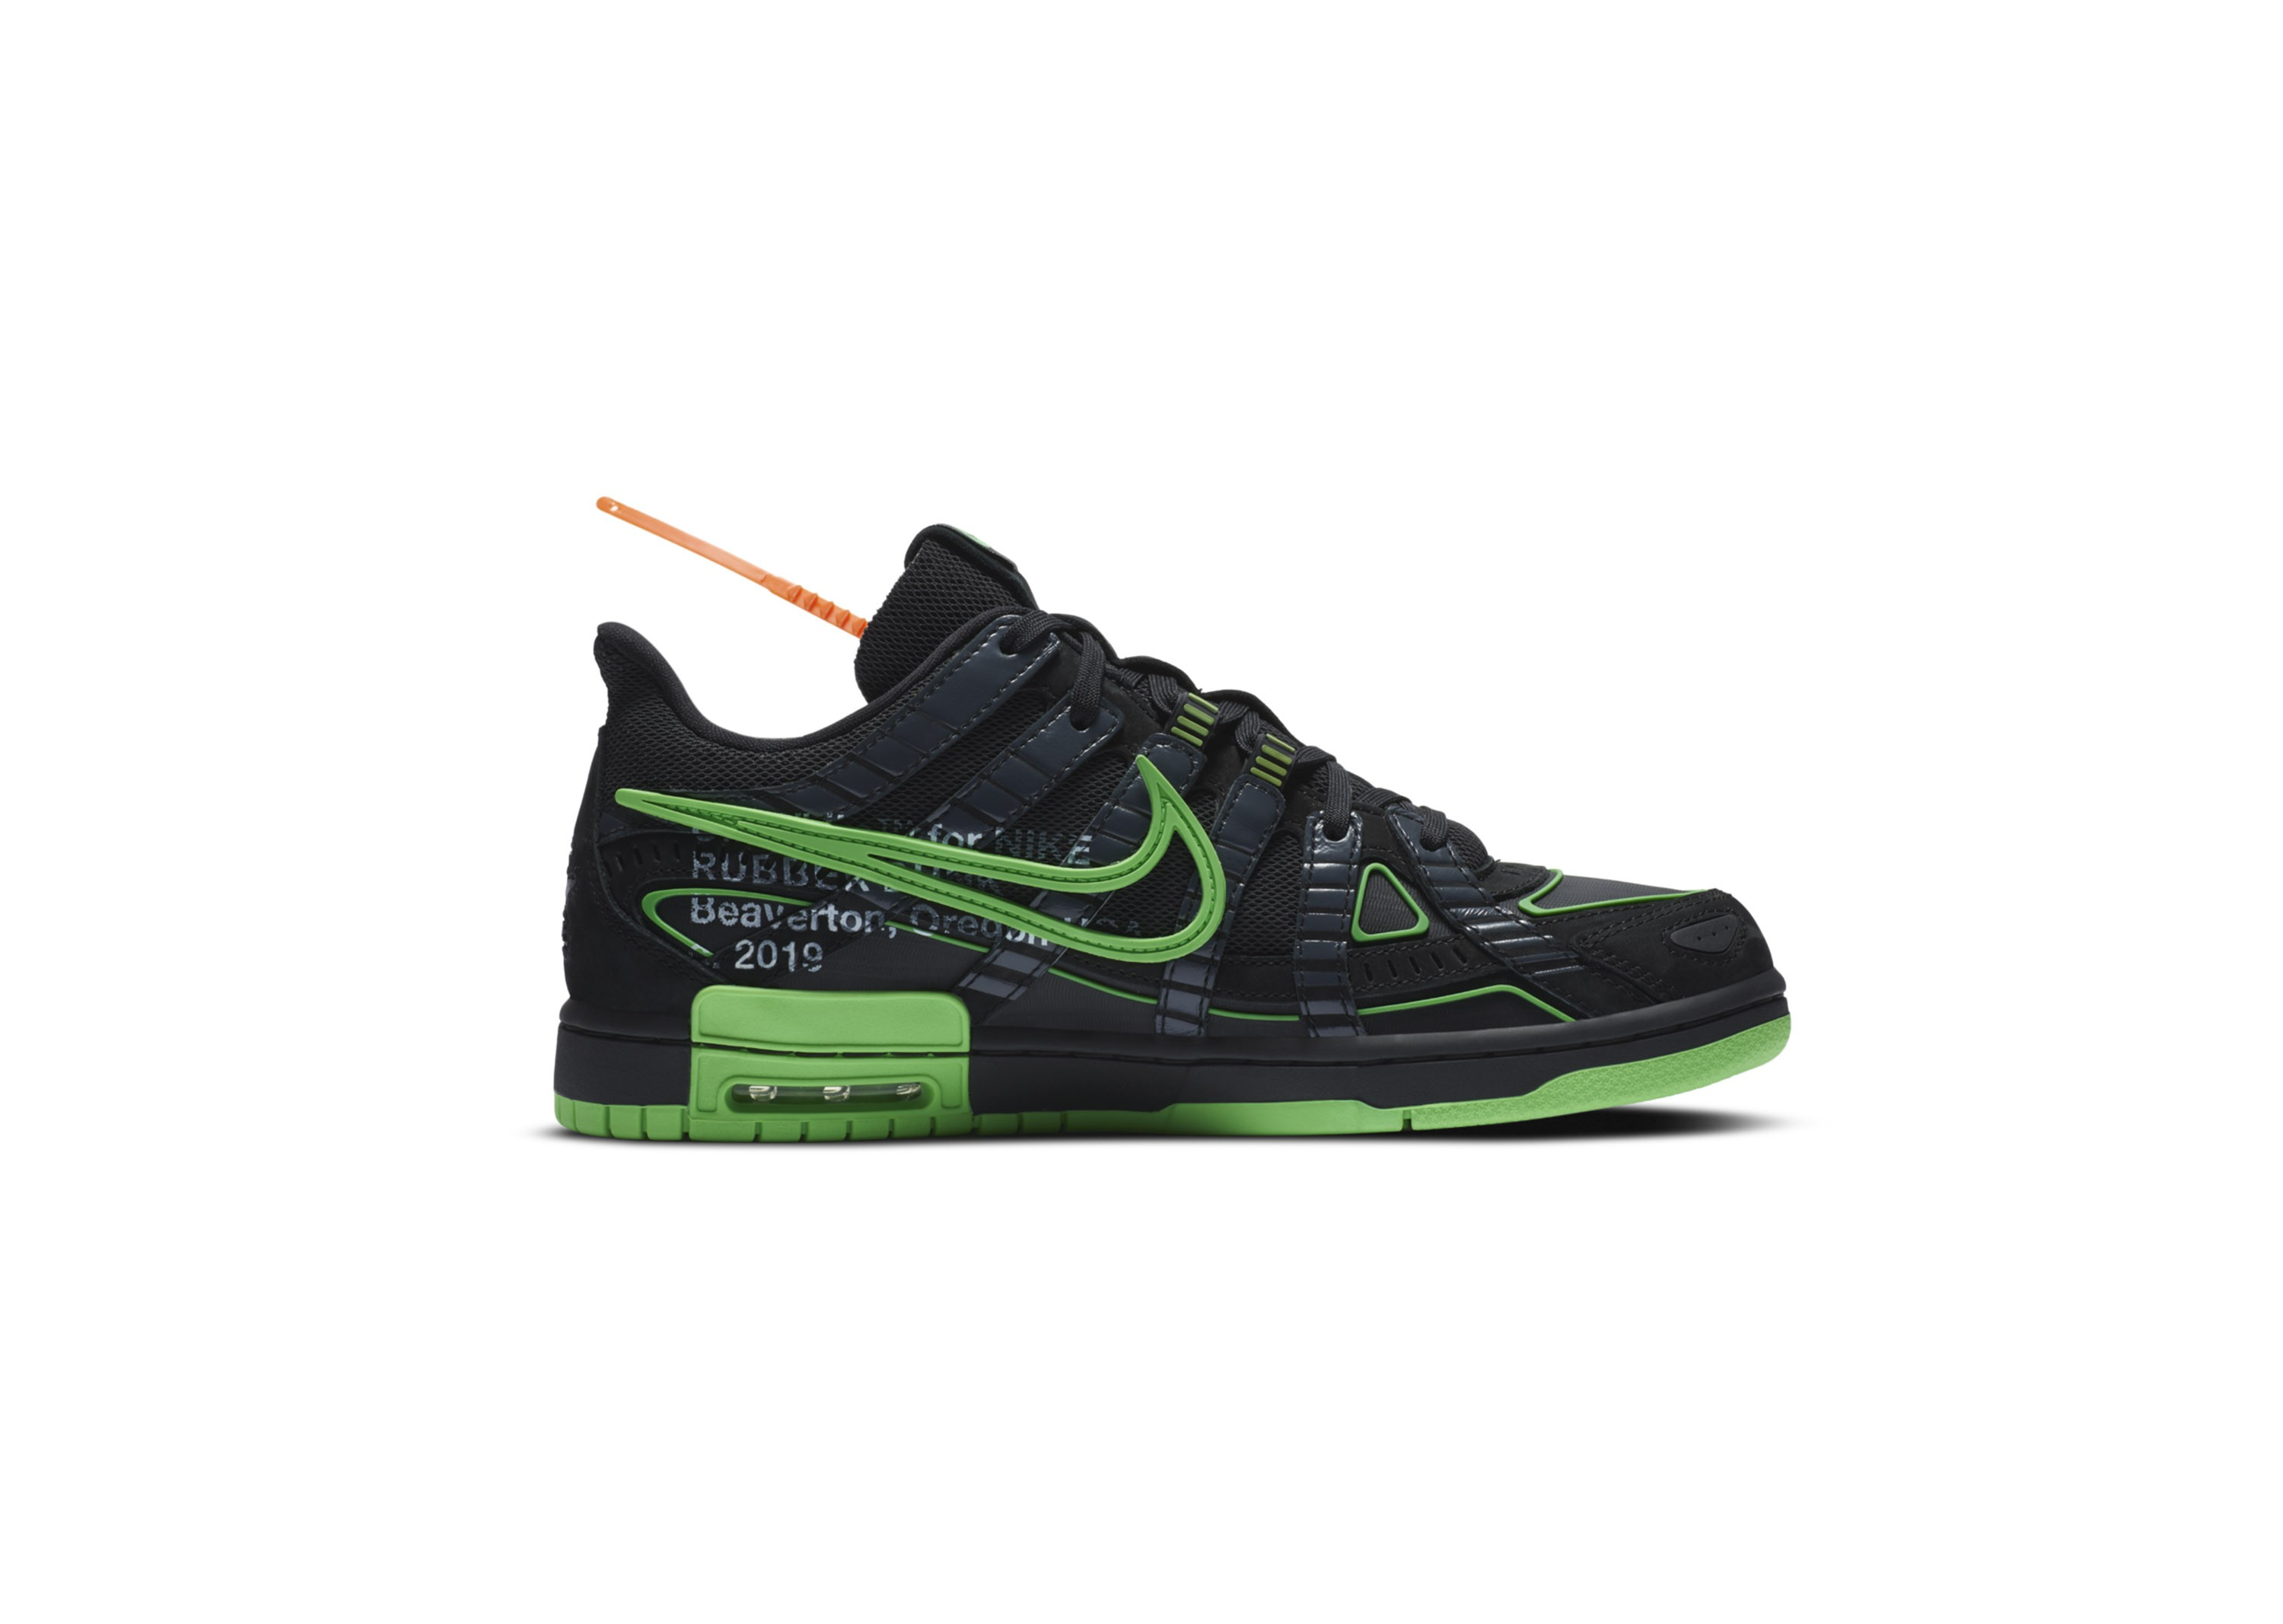 NIKE_OW_RUBBERDUNK__0003_CU6015-001_194273318_D_C_1X1_native_1600